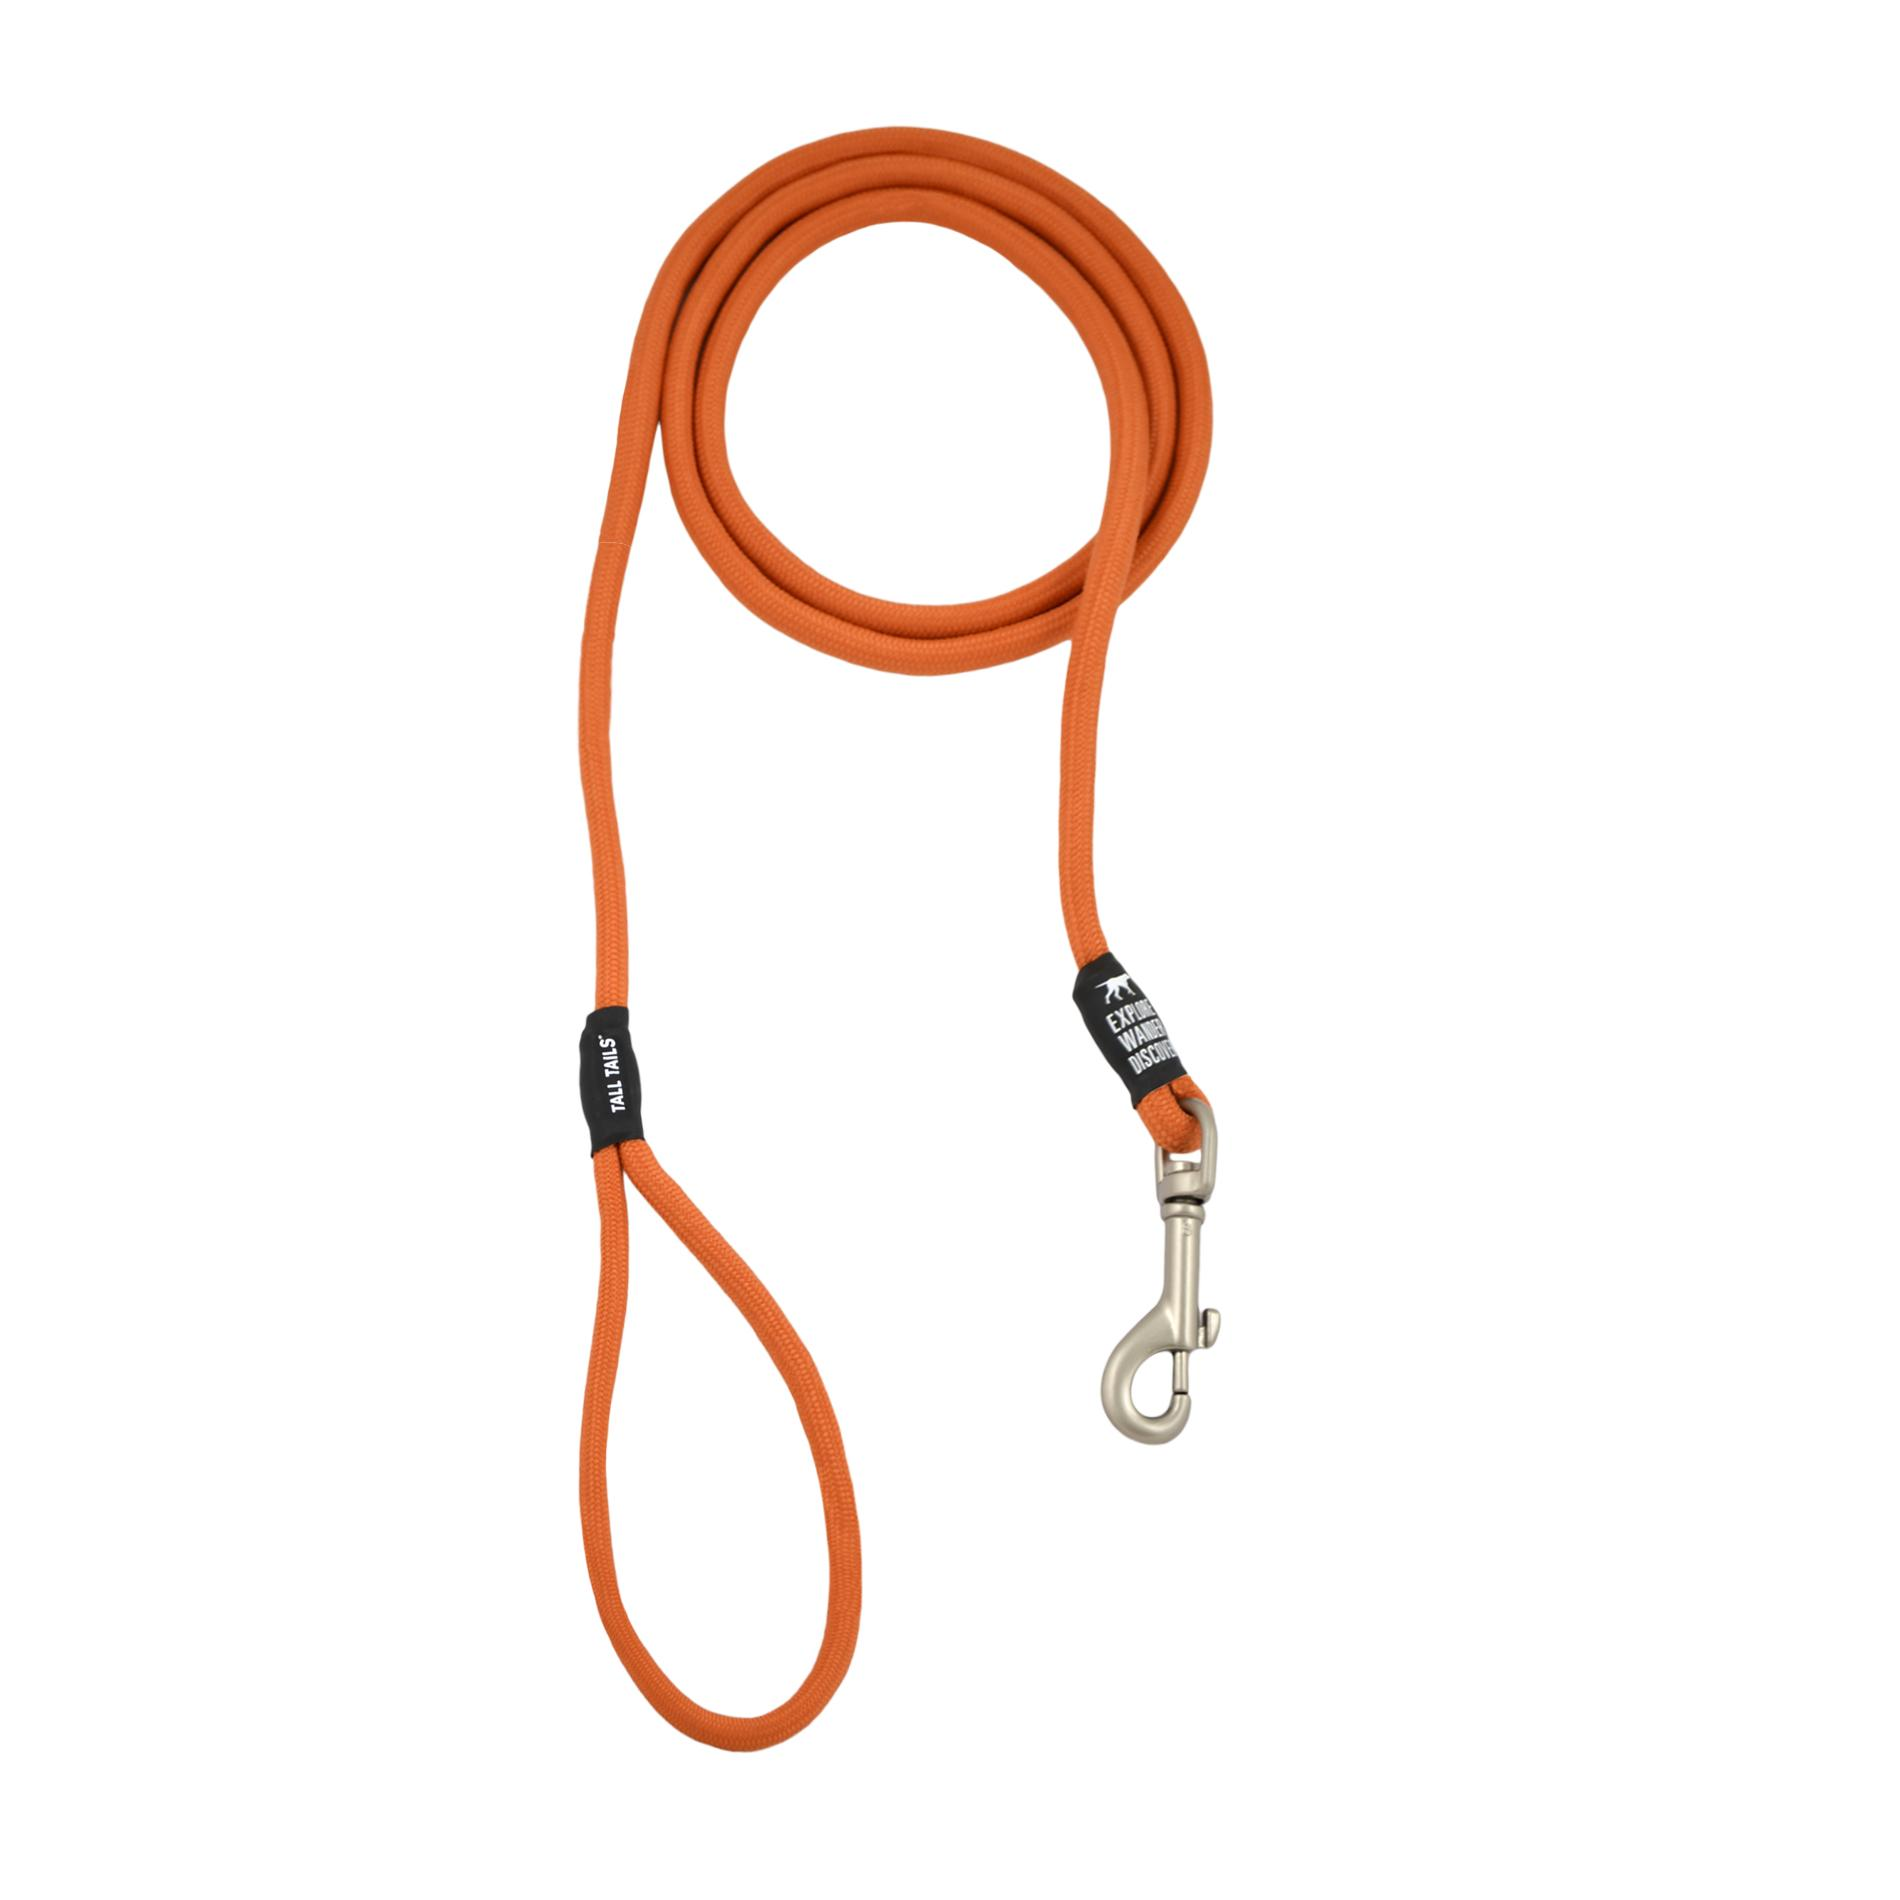 Tall Tails Rope Dog Leash, Orange Image